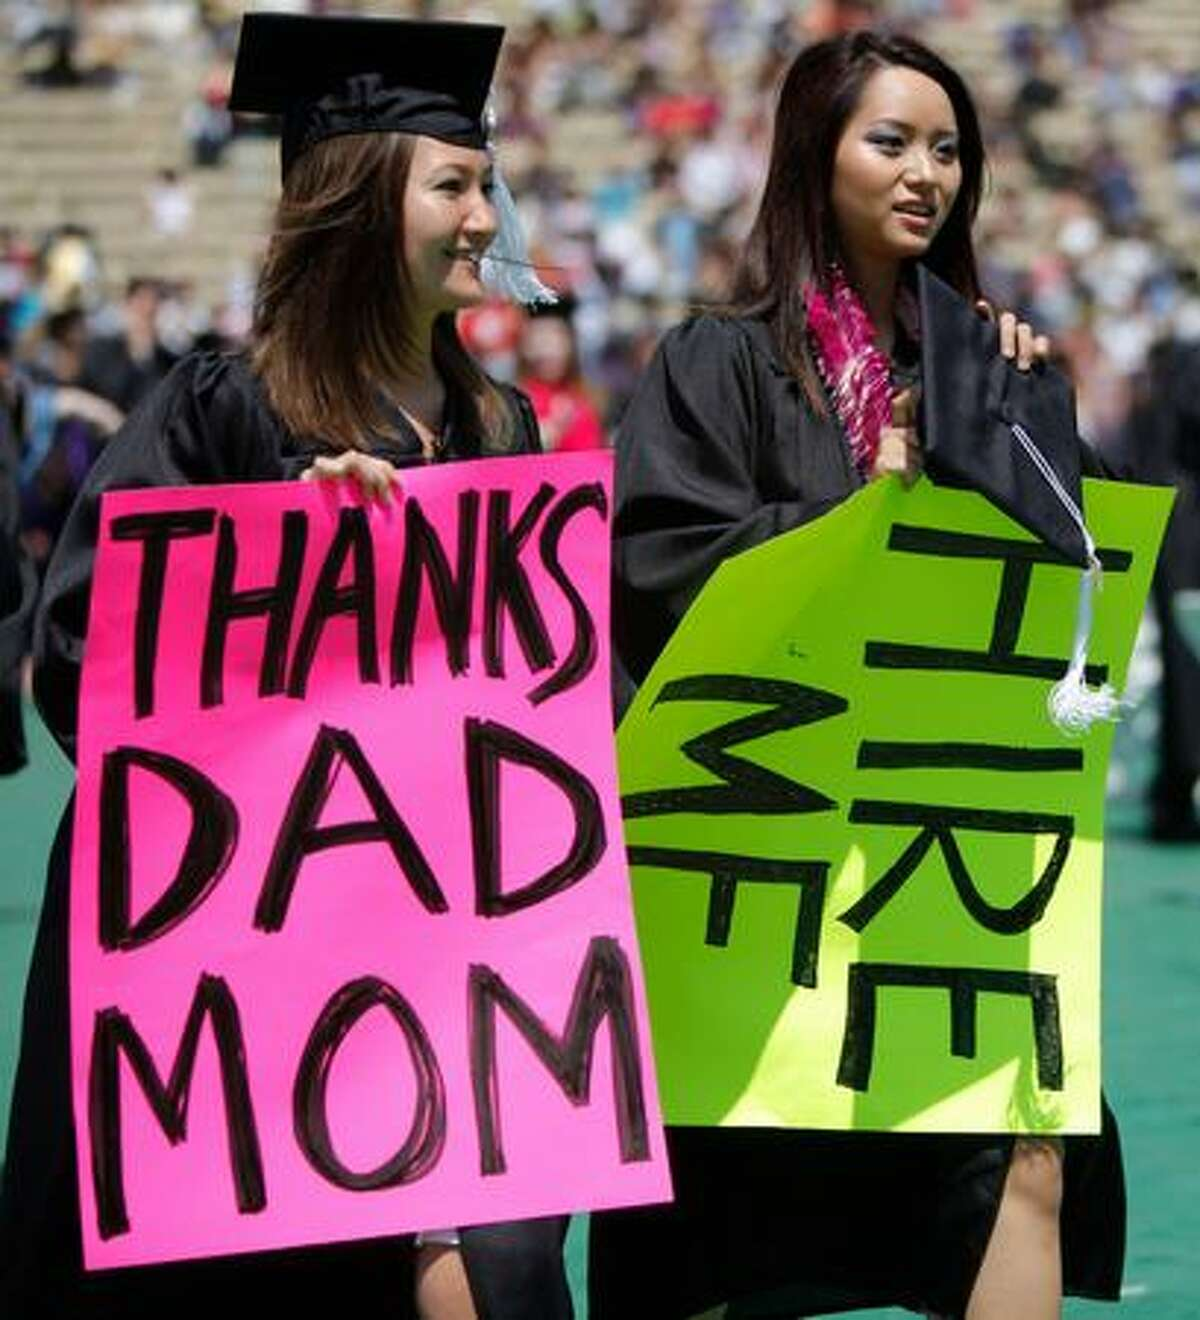 Graduating students Jessica Meurs, left, and Toquyen Truong hold brightly-colored signs while walking to their seats.